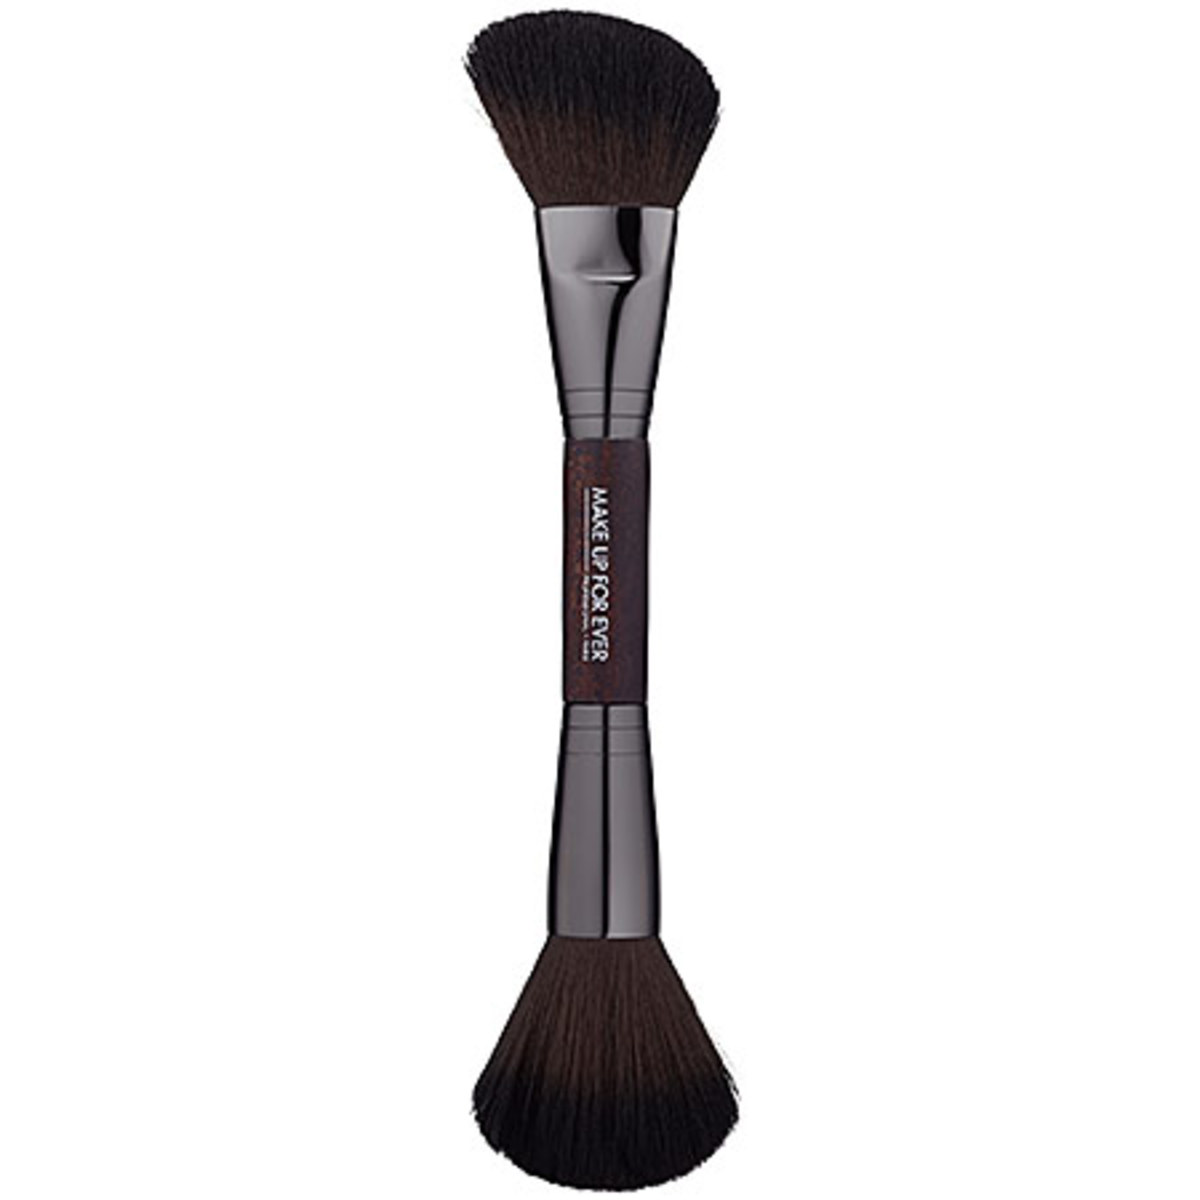 Make Up For Ever Double Ended Sculpting Brush